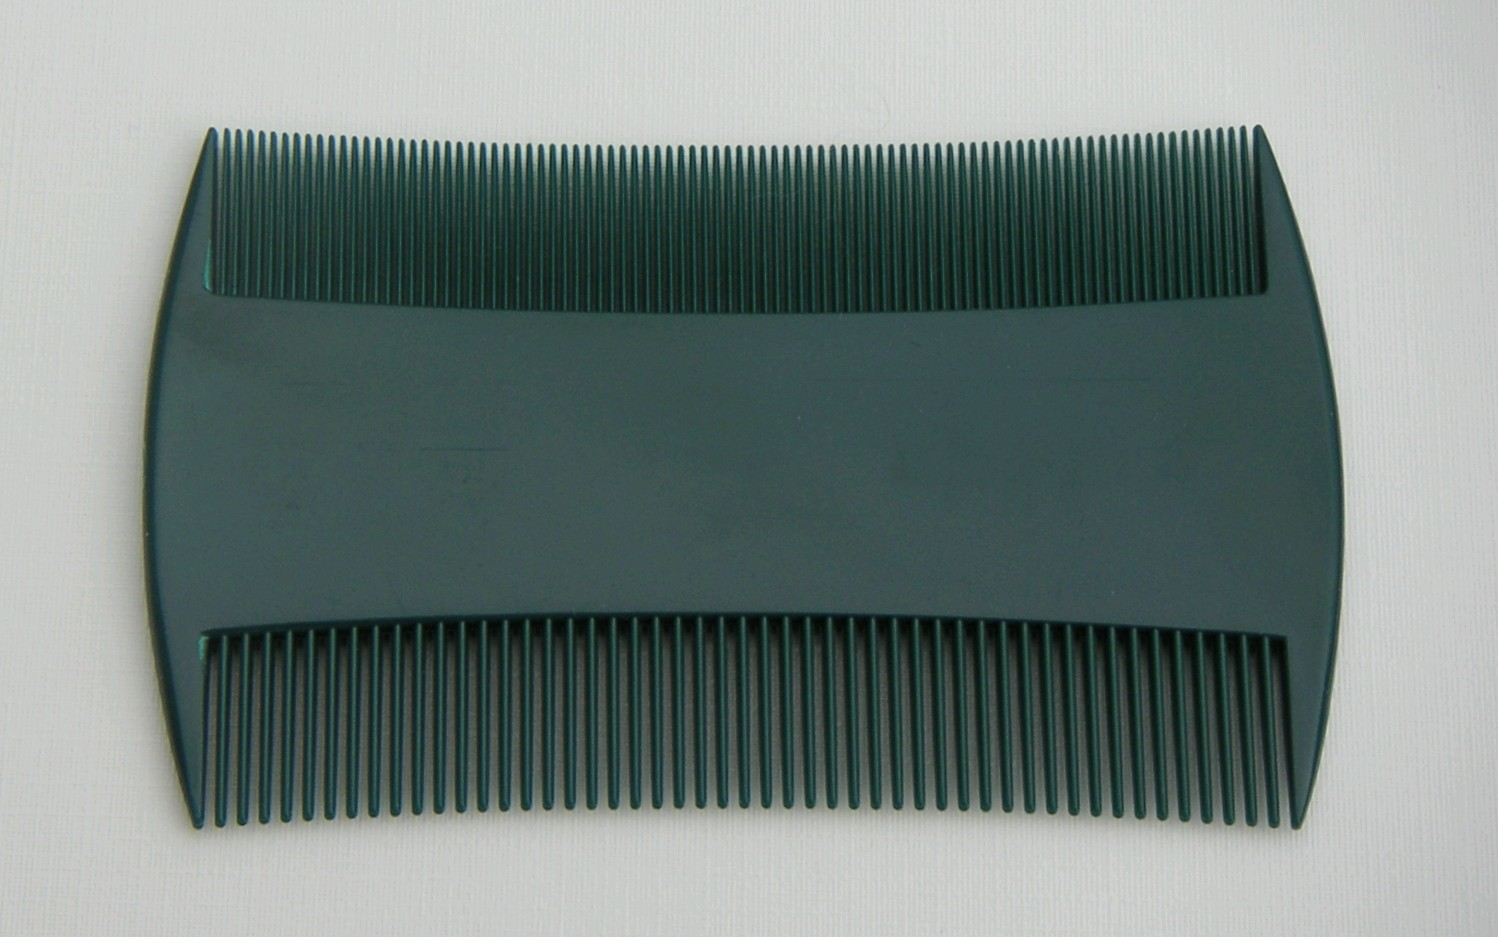 Image result for comb to remove lice